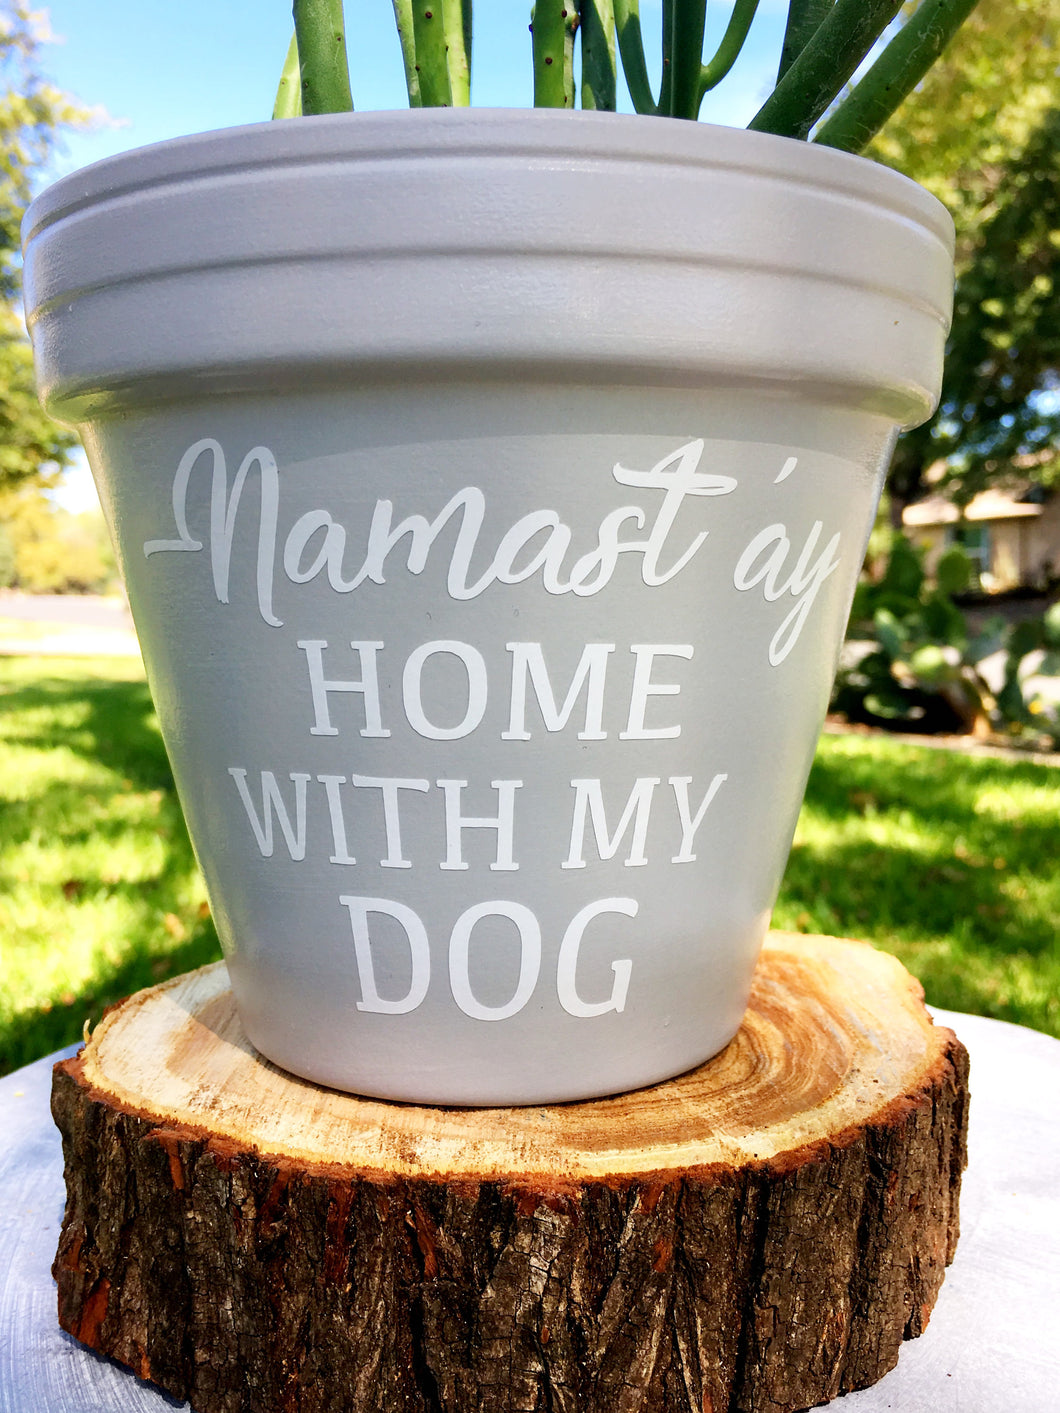 Namast'ay Home with My Dog Pot - Gift for Dog Lover - Custom Pot for Dog Lover - Custom Pot - Dog Lover - Pet Gift - Knox Pots - Knox Pot